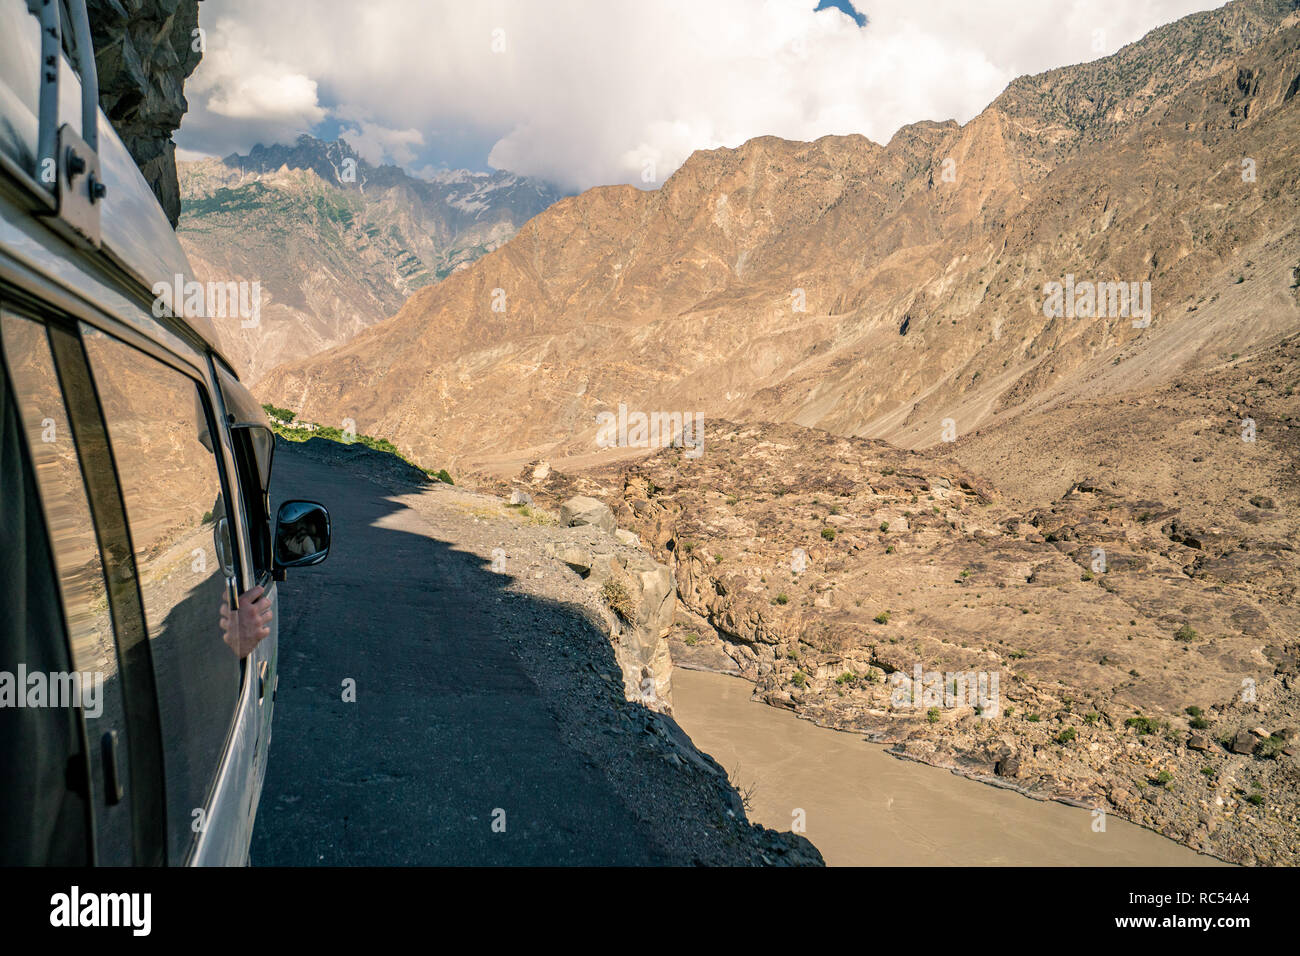 Driving on dangerous mountain roads in Pakistan on the edge of cliffs - Stock Image